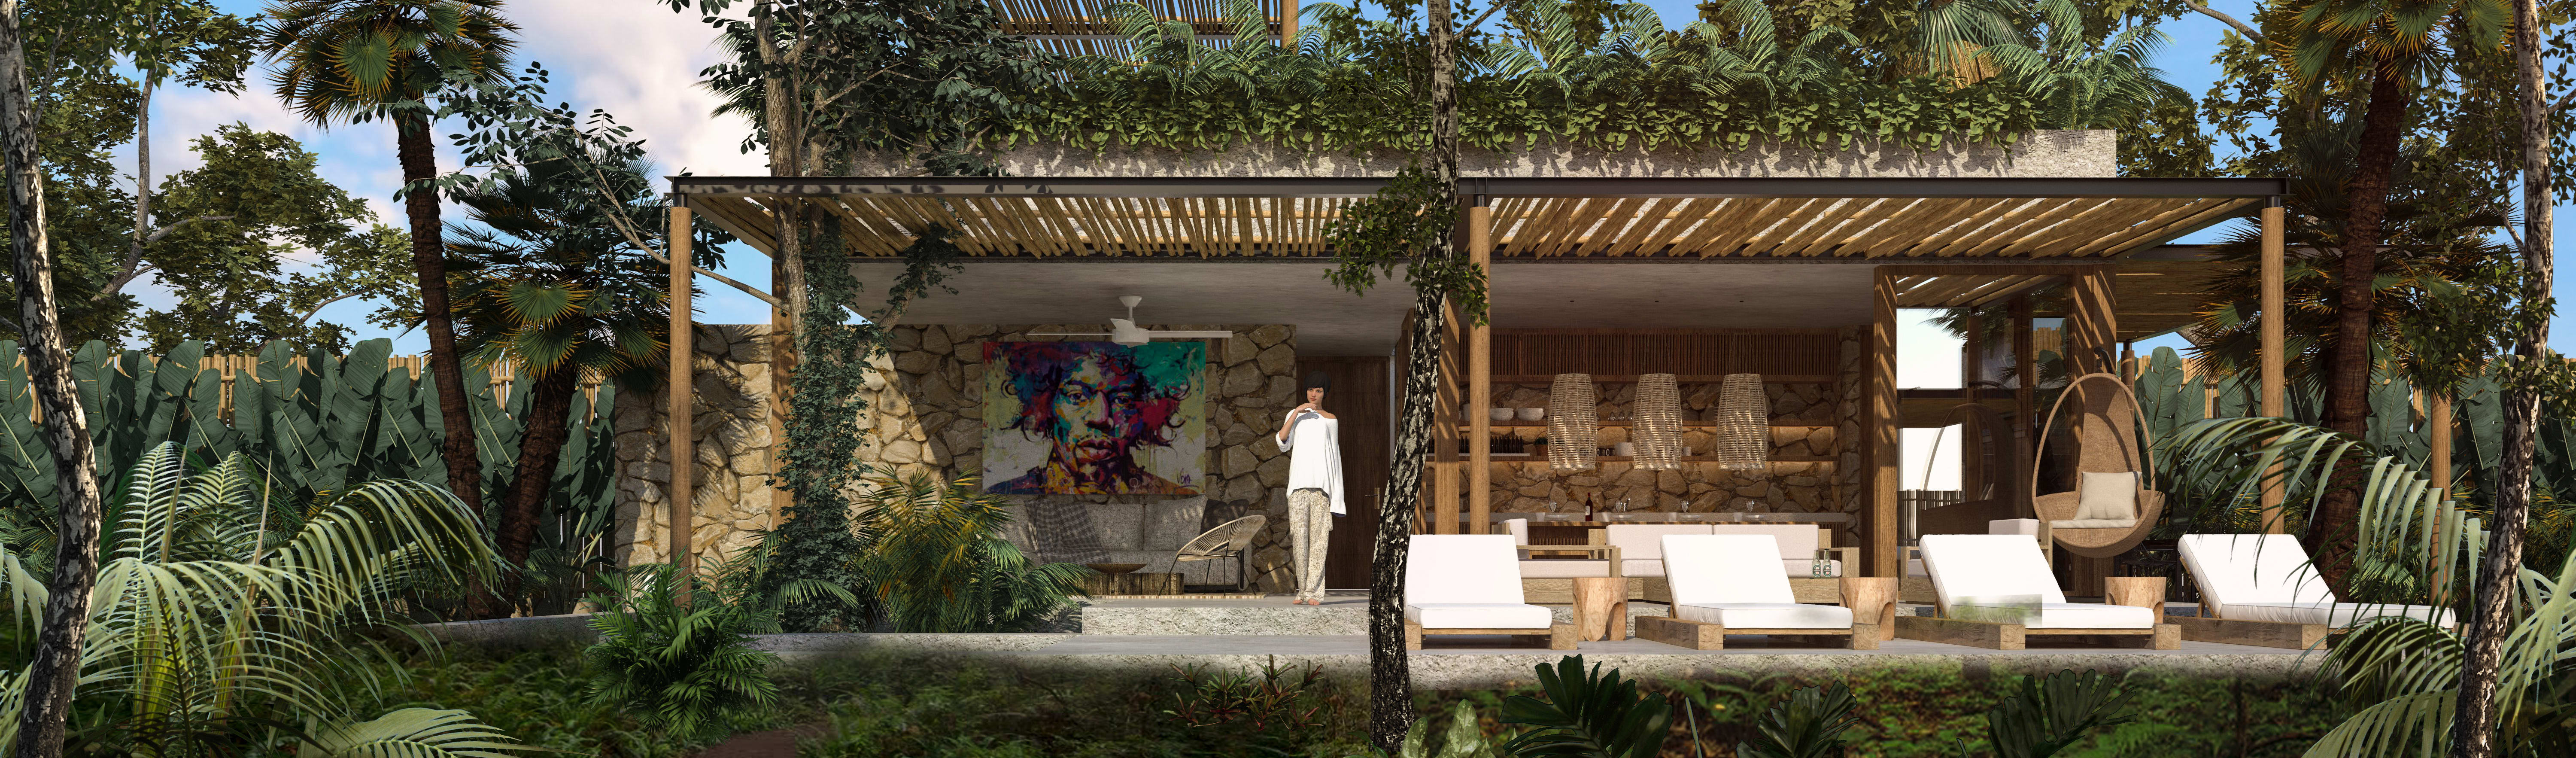 Obed Clemente Arquitectura